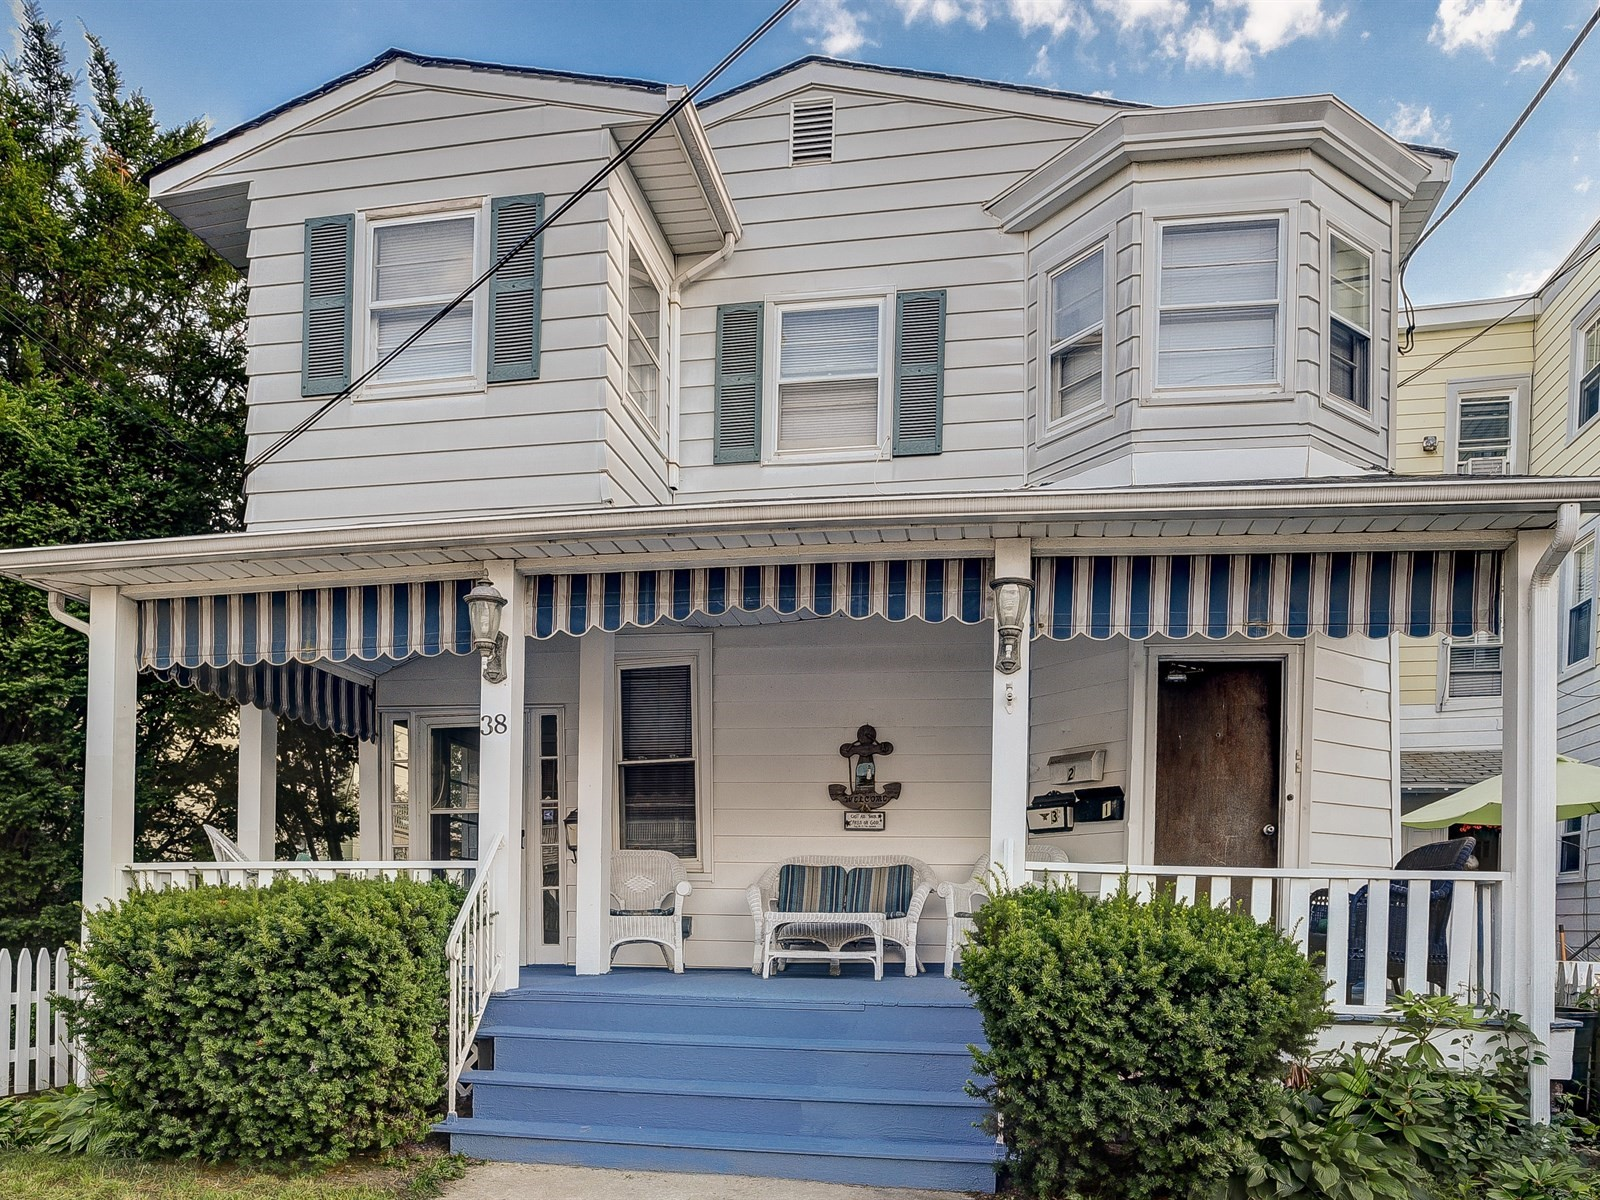 38 Pitman Ave. Ocean Grove Just Listed! 4 family home with Ocean Views!